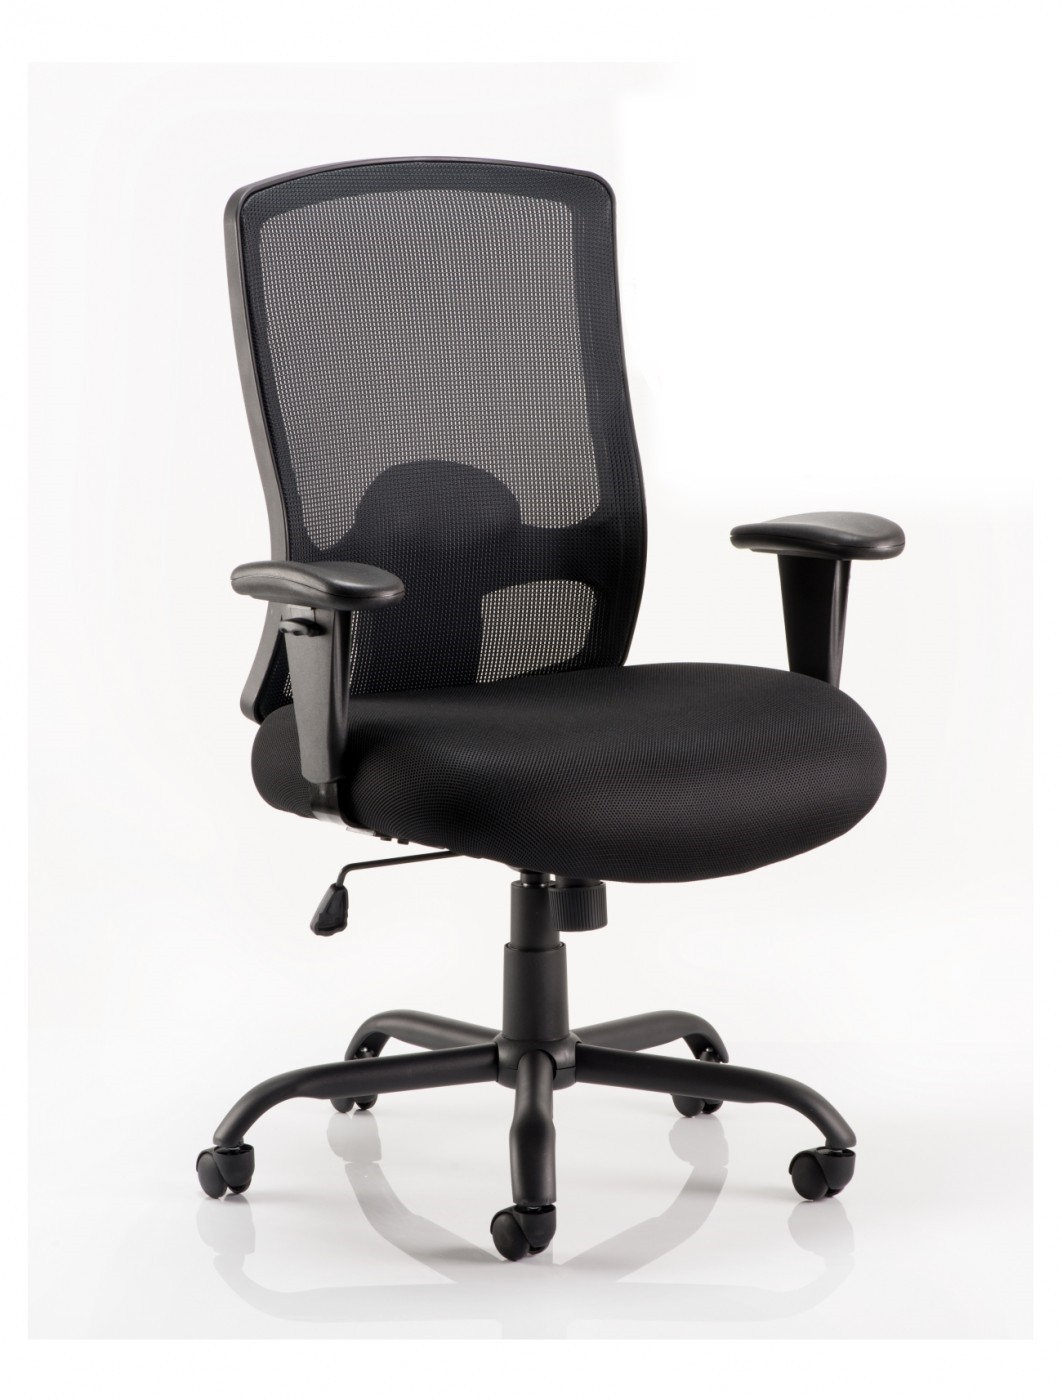 heavy duty gaming chair kids play chairs dynamic portland super mesh office